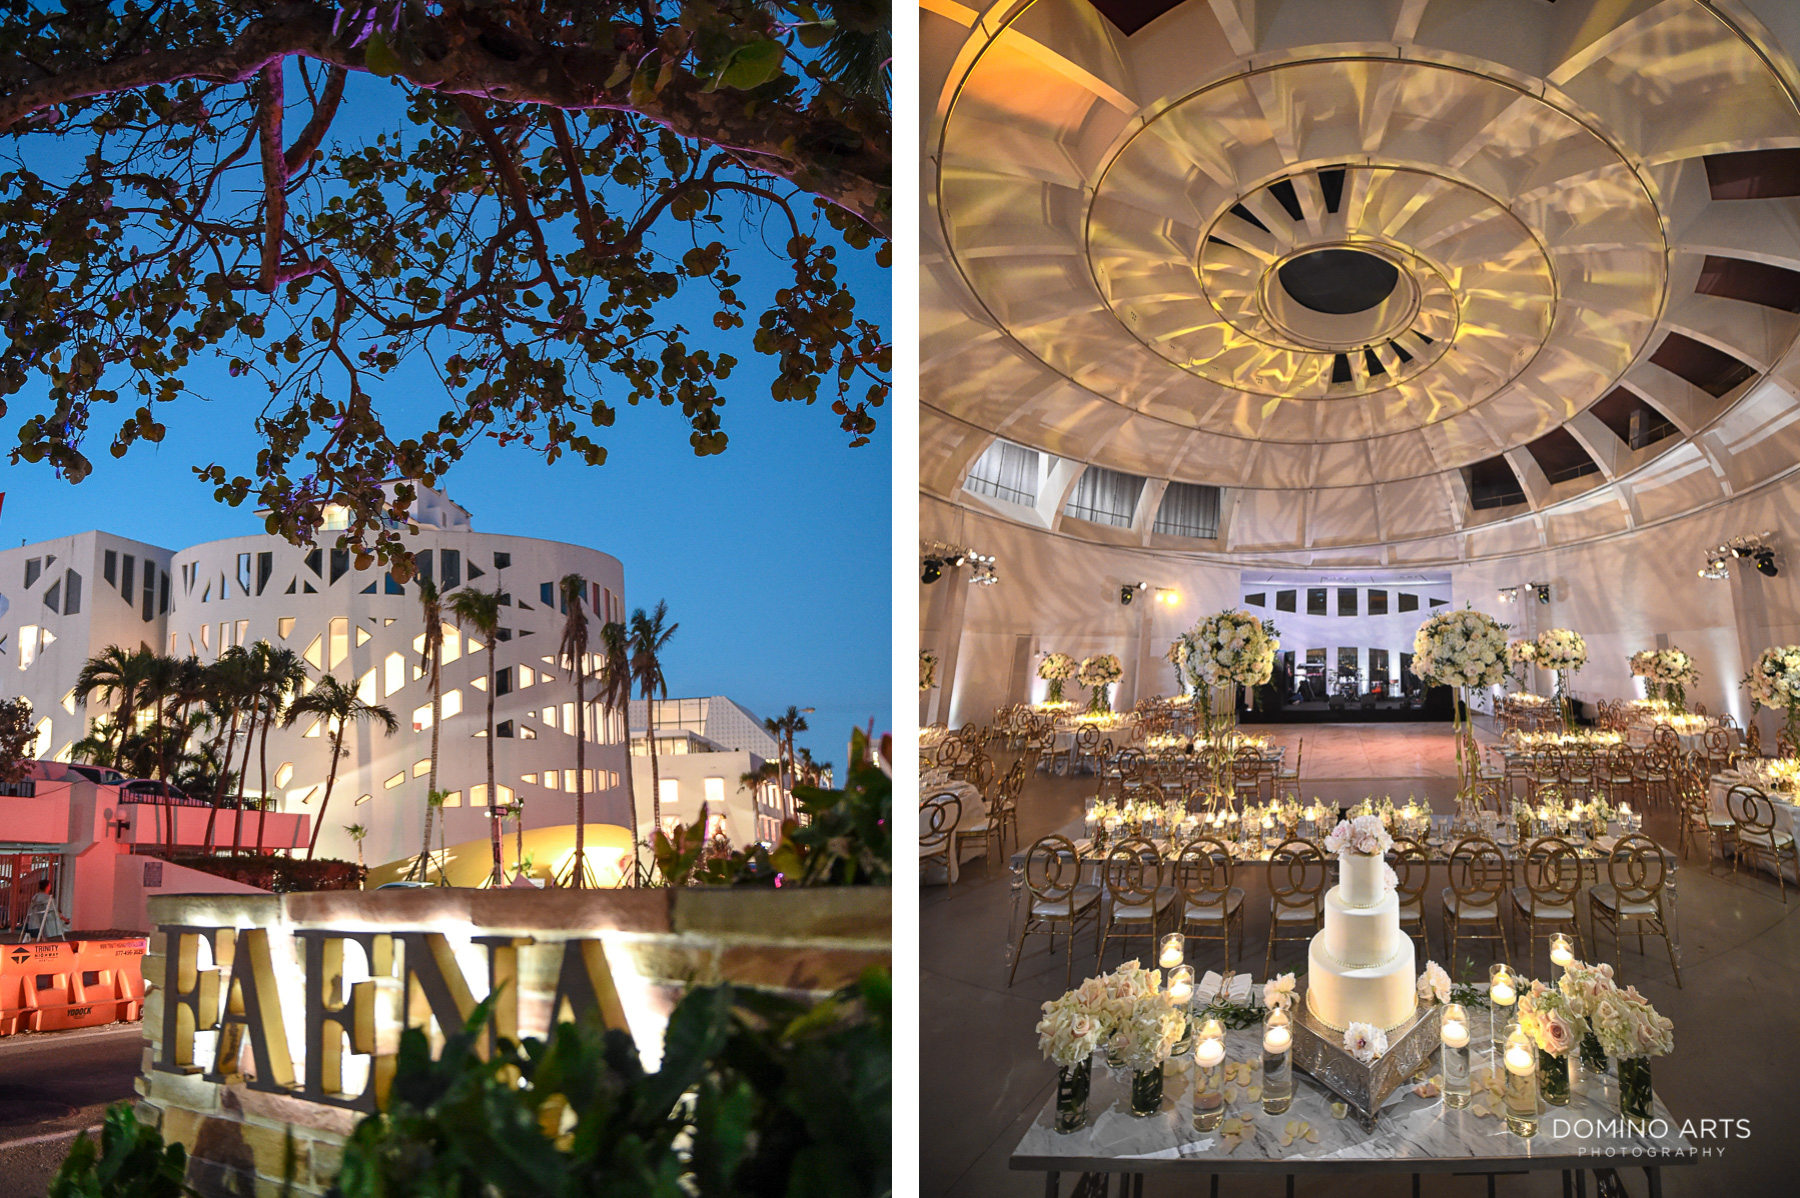 Luxury Decor and flowers at Faena Hotel Miami Beach Wedding